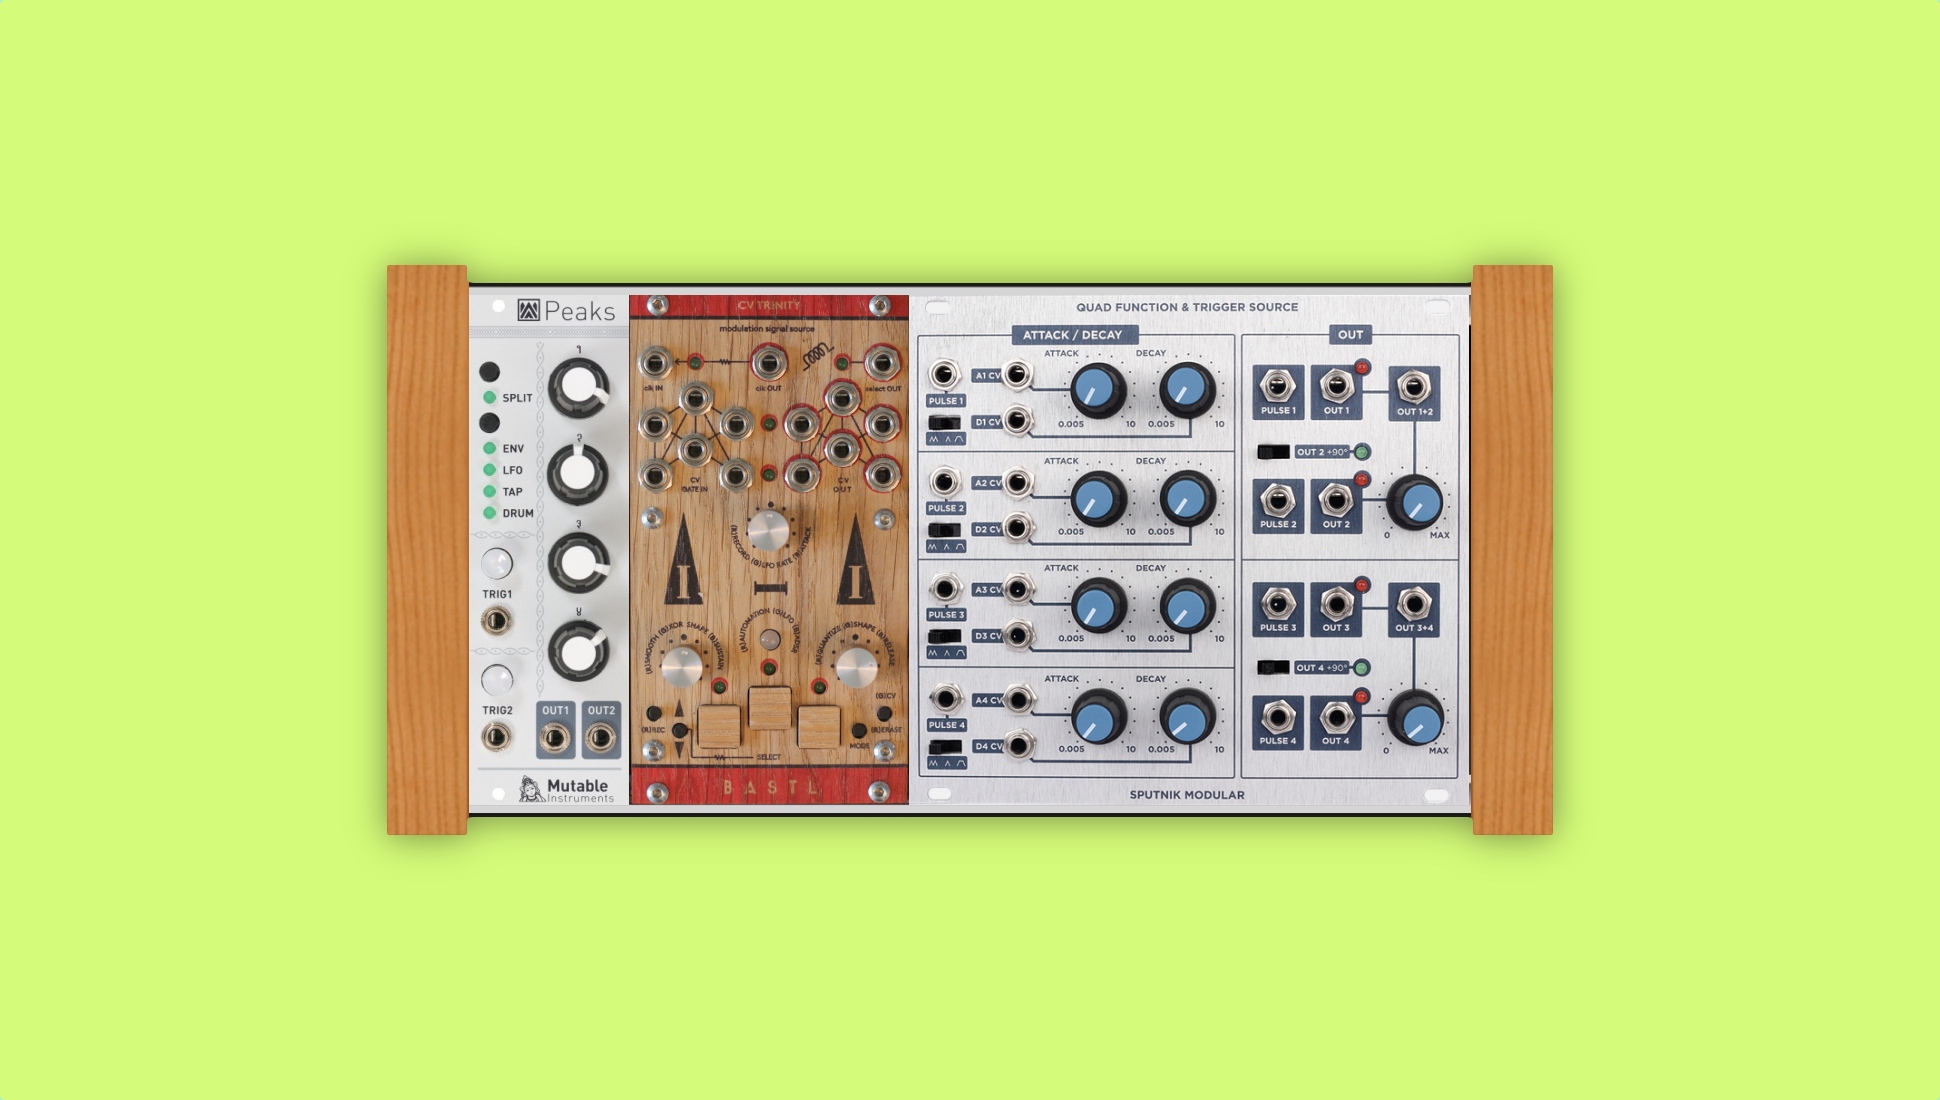 How To Build A Modular Synth The Ultimate Eurorack Buyers Guide Series And Parallel Circuits Science Junky Pinterest Modulation Sources